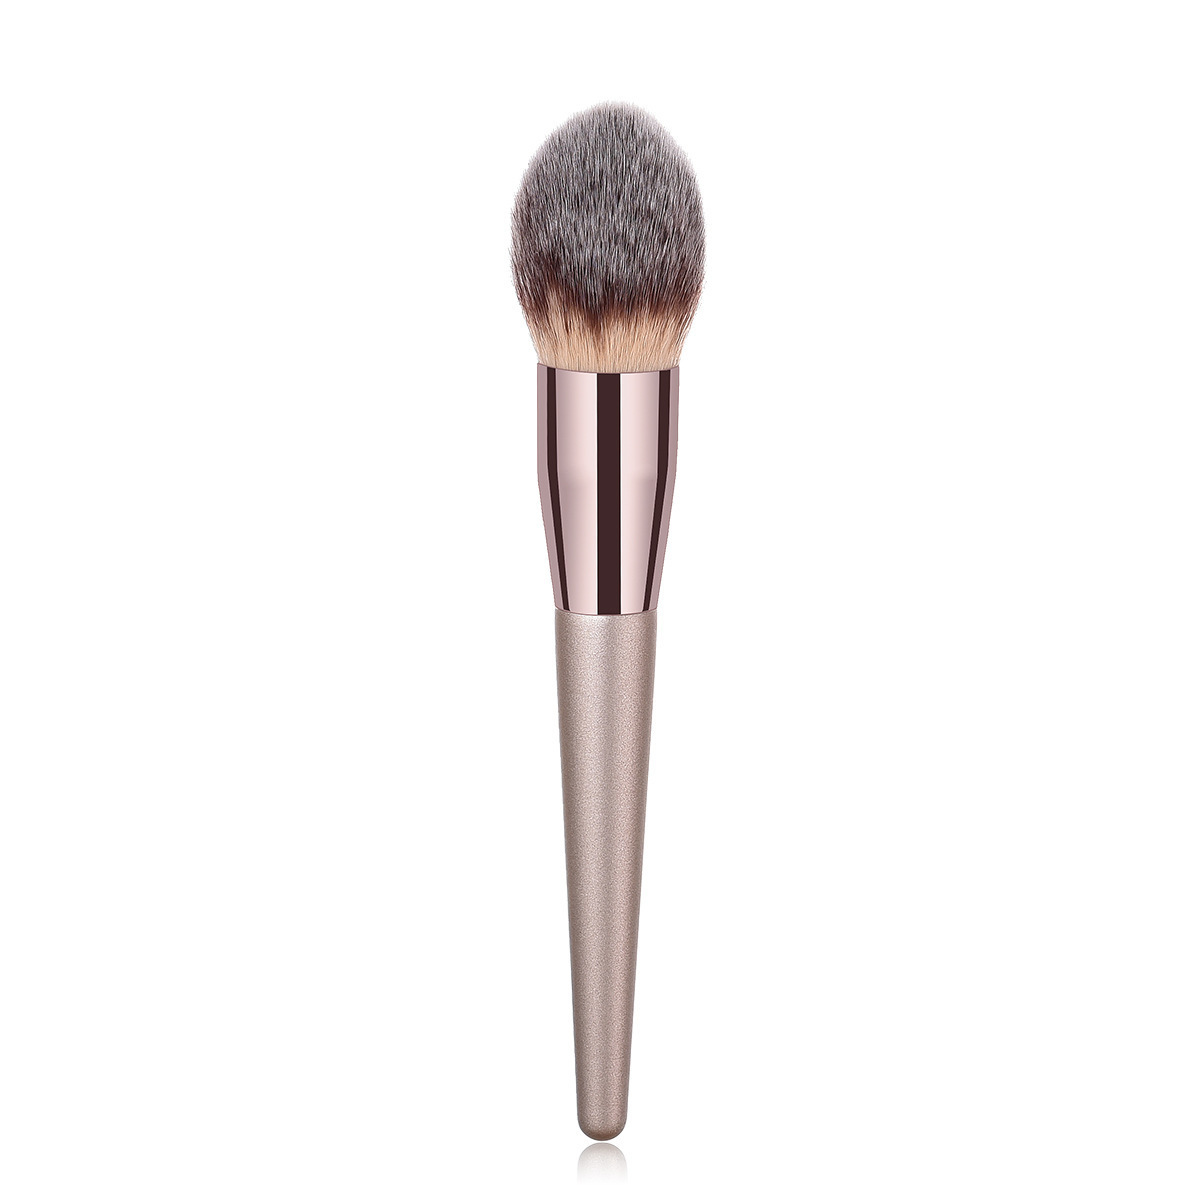 Makeup Powder Foundation Eyeshadow Contour Tapered Eye Blending Brush Cosmetics Tools